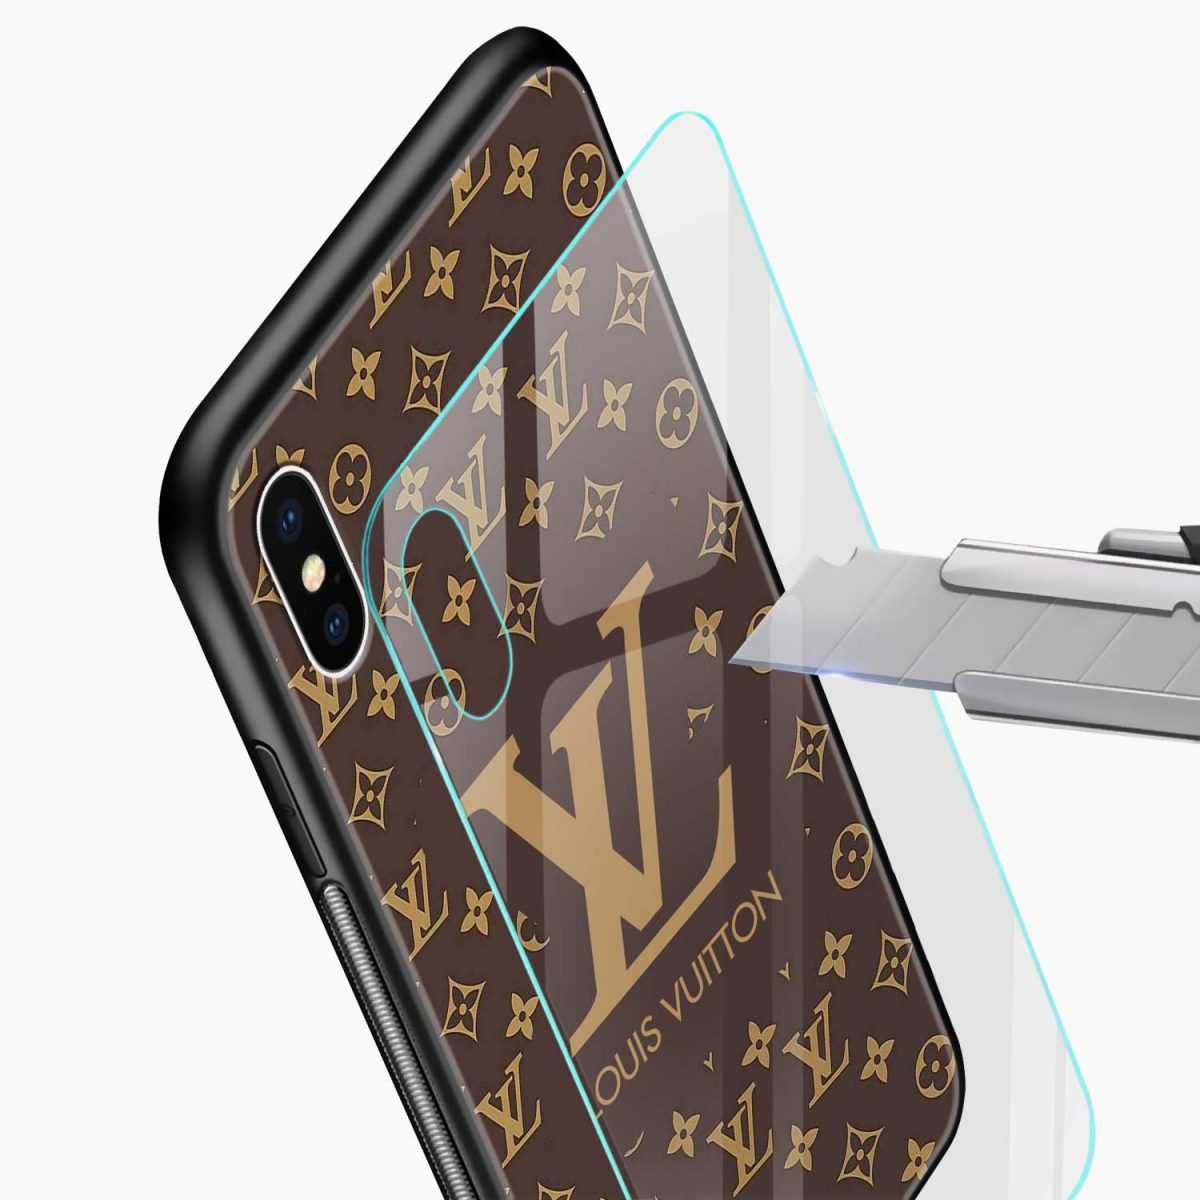 louis vuitton glass view apple iphone x xs max back cover